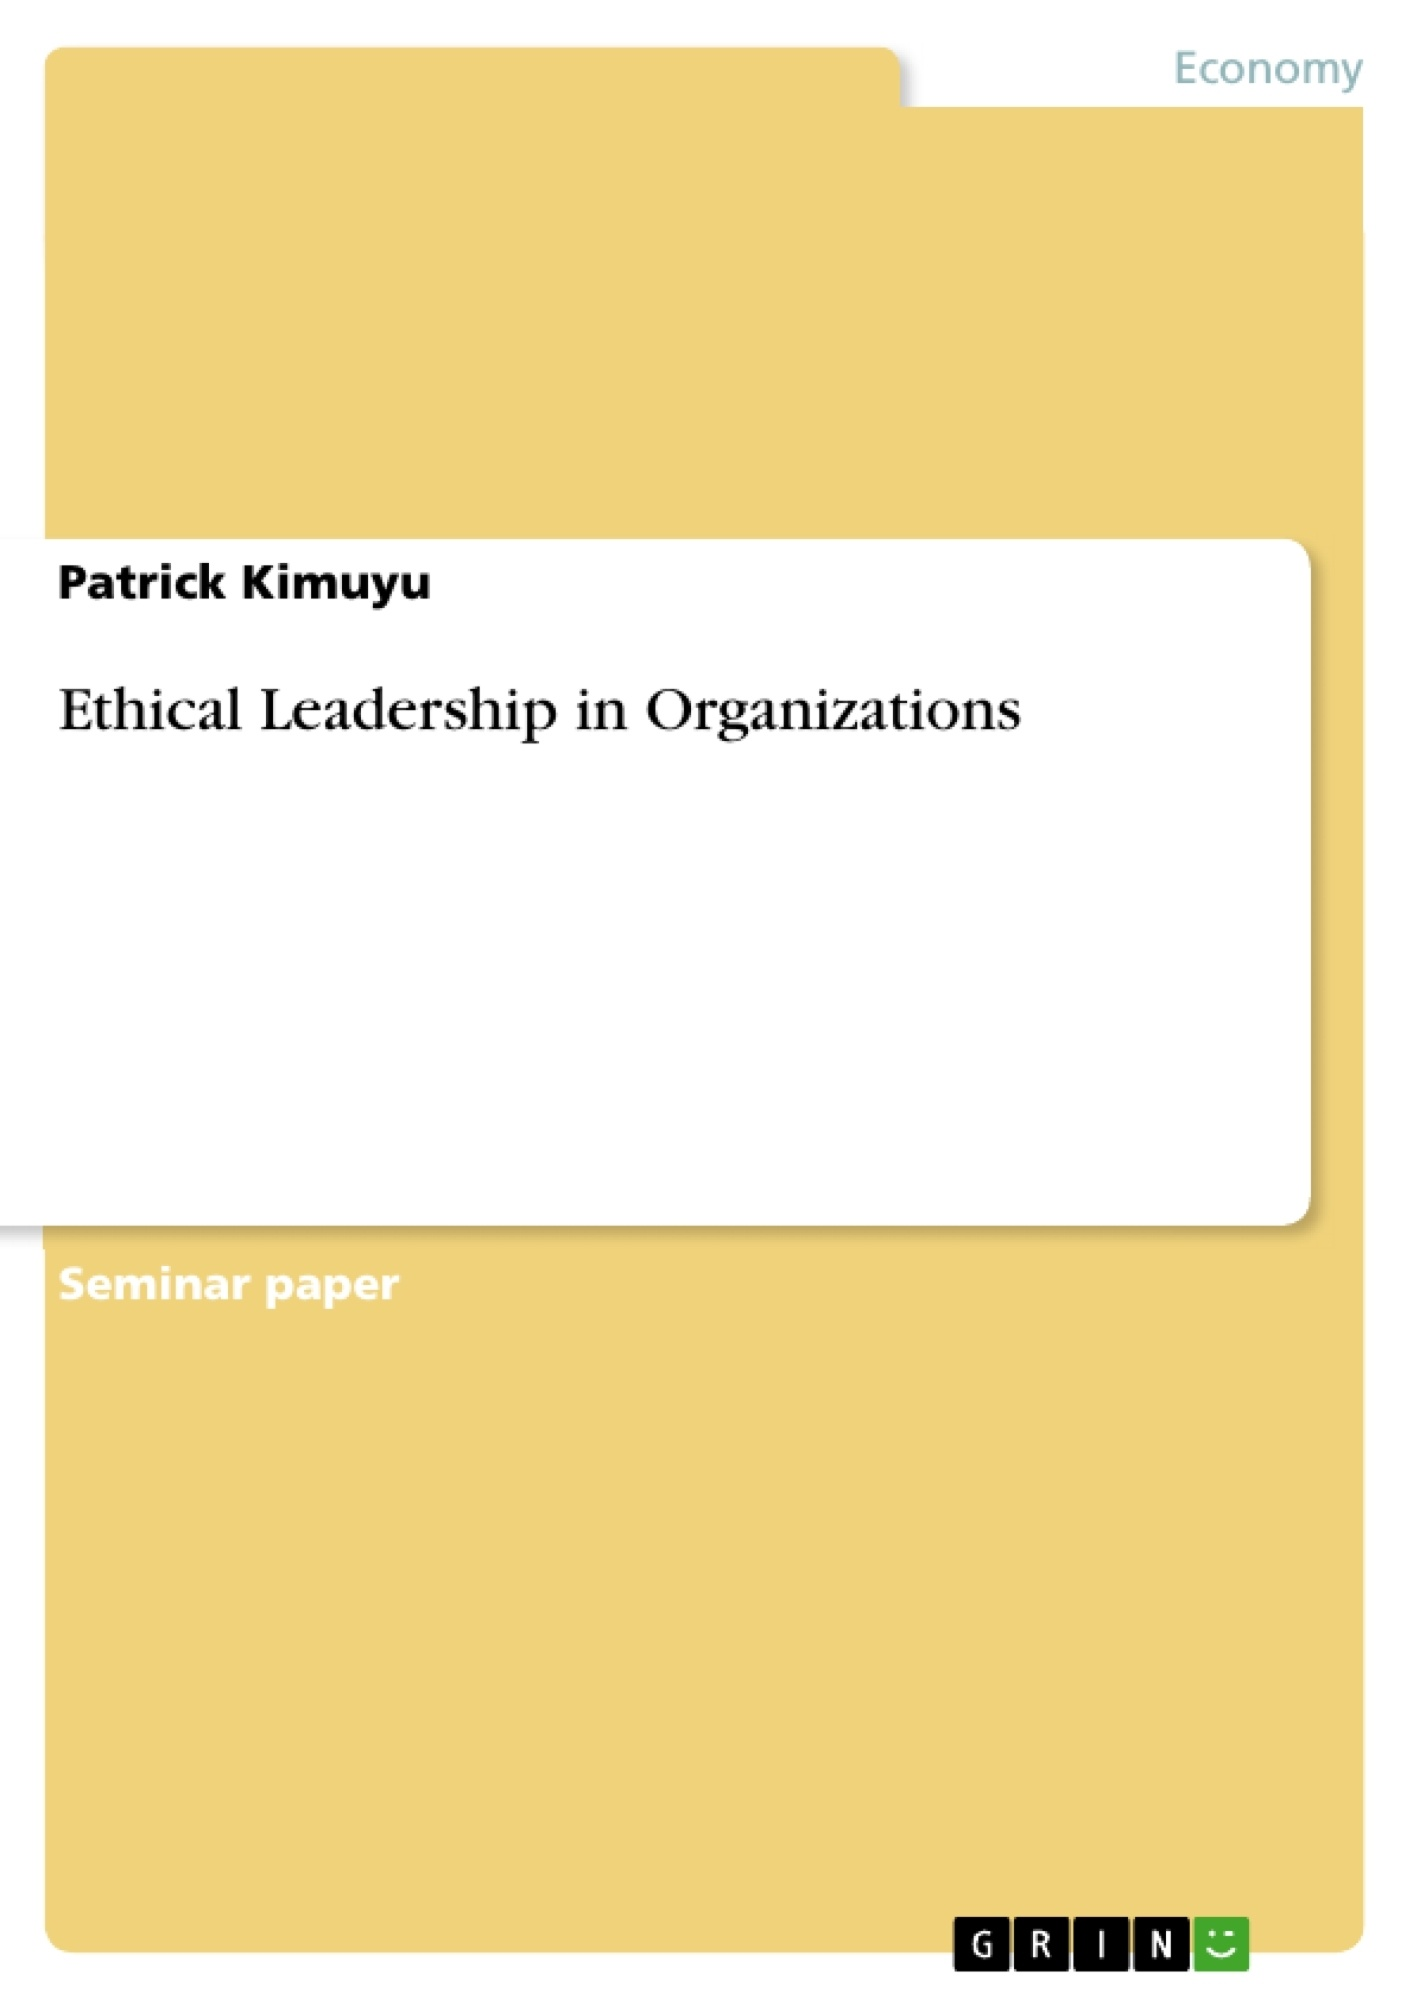 Title: Ethical Leadership in Organizations